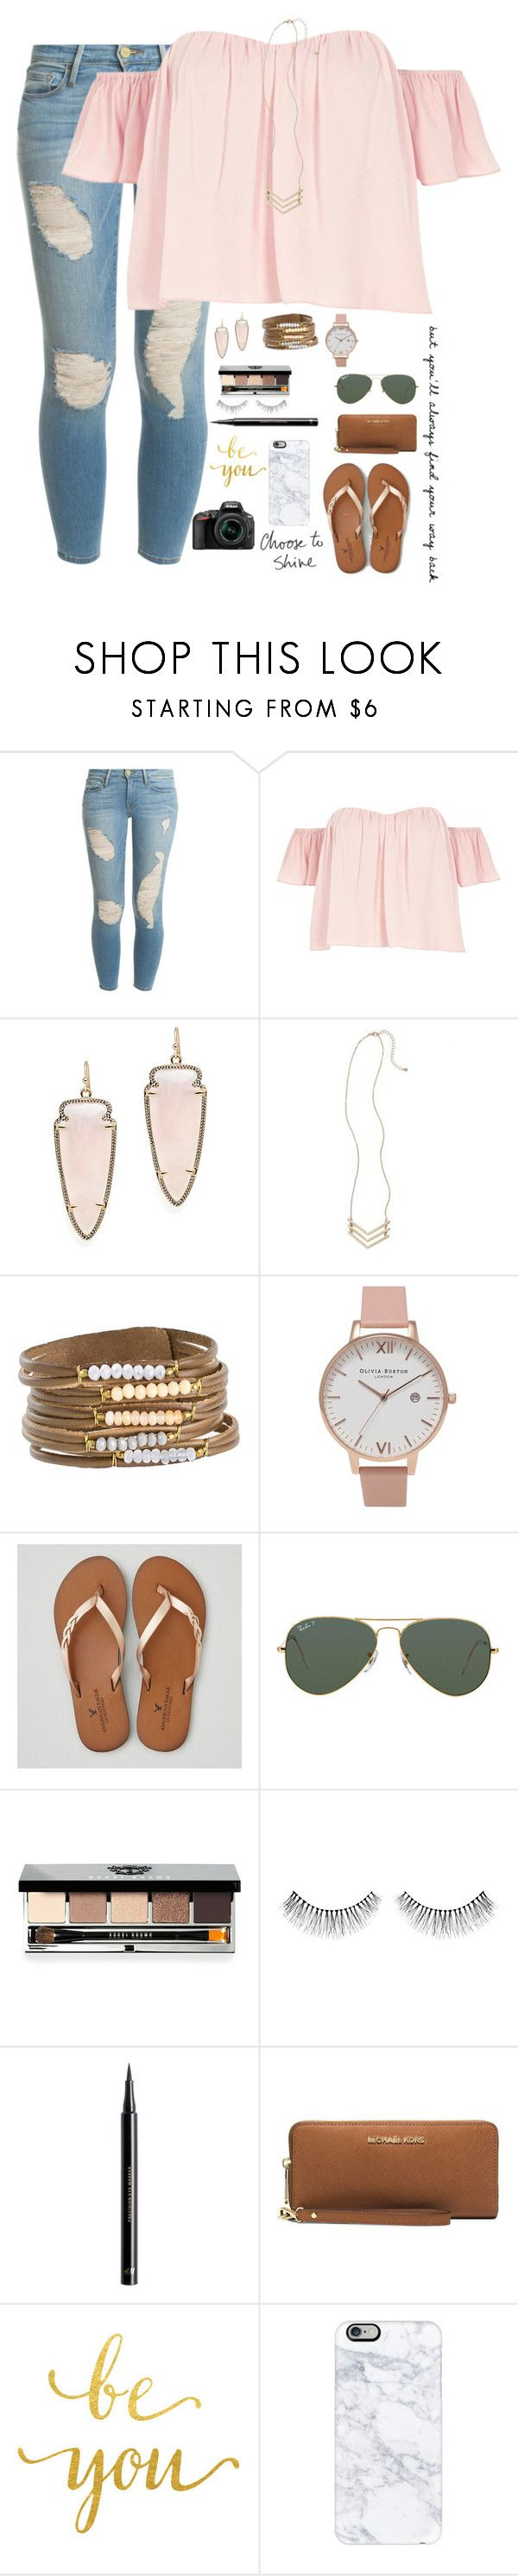 """•Faith is the only thing Stronger than Fear•"" by mgpayne10 ❤ liked on Polyvore featuring Frame, River Island, Kendra Scott, Girly, Olivia Burton, American Eagle Outfitters, Ray-Ban, Bobbi Brown Cosmetics, NARS Cosmetics and H&M"